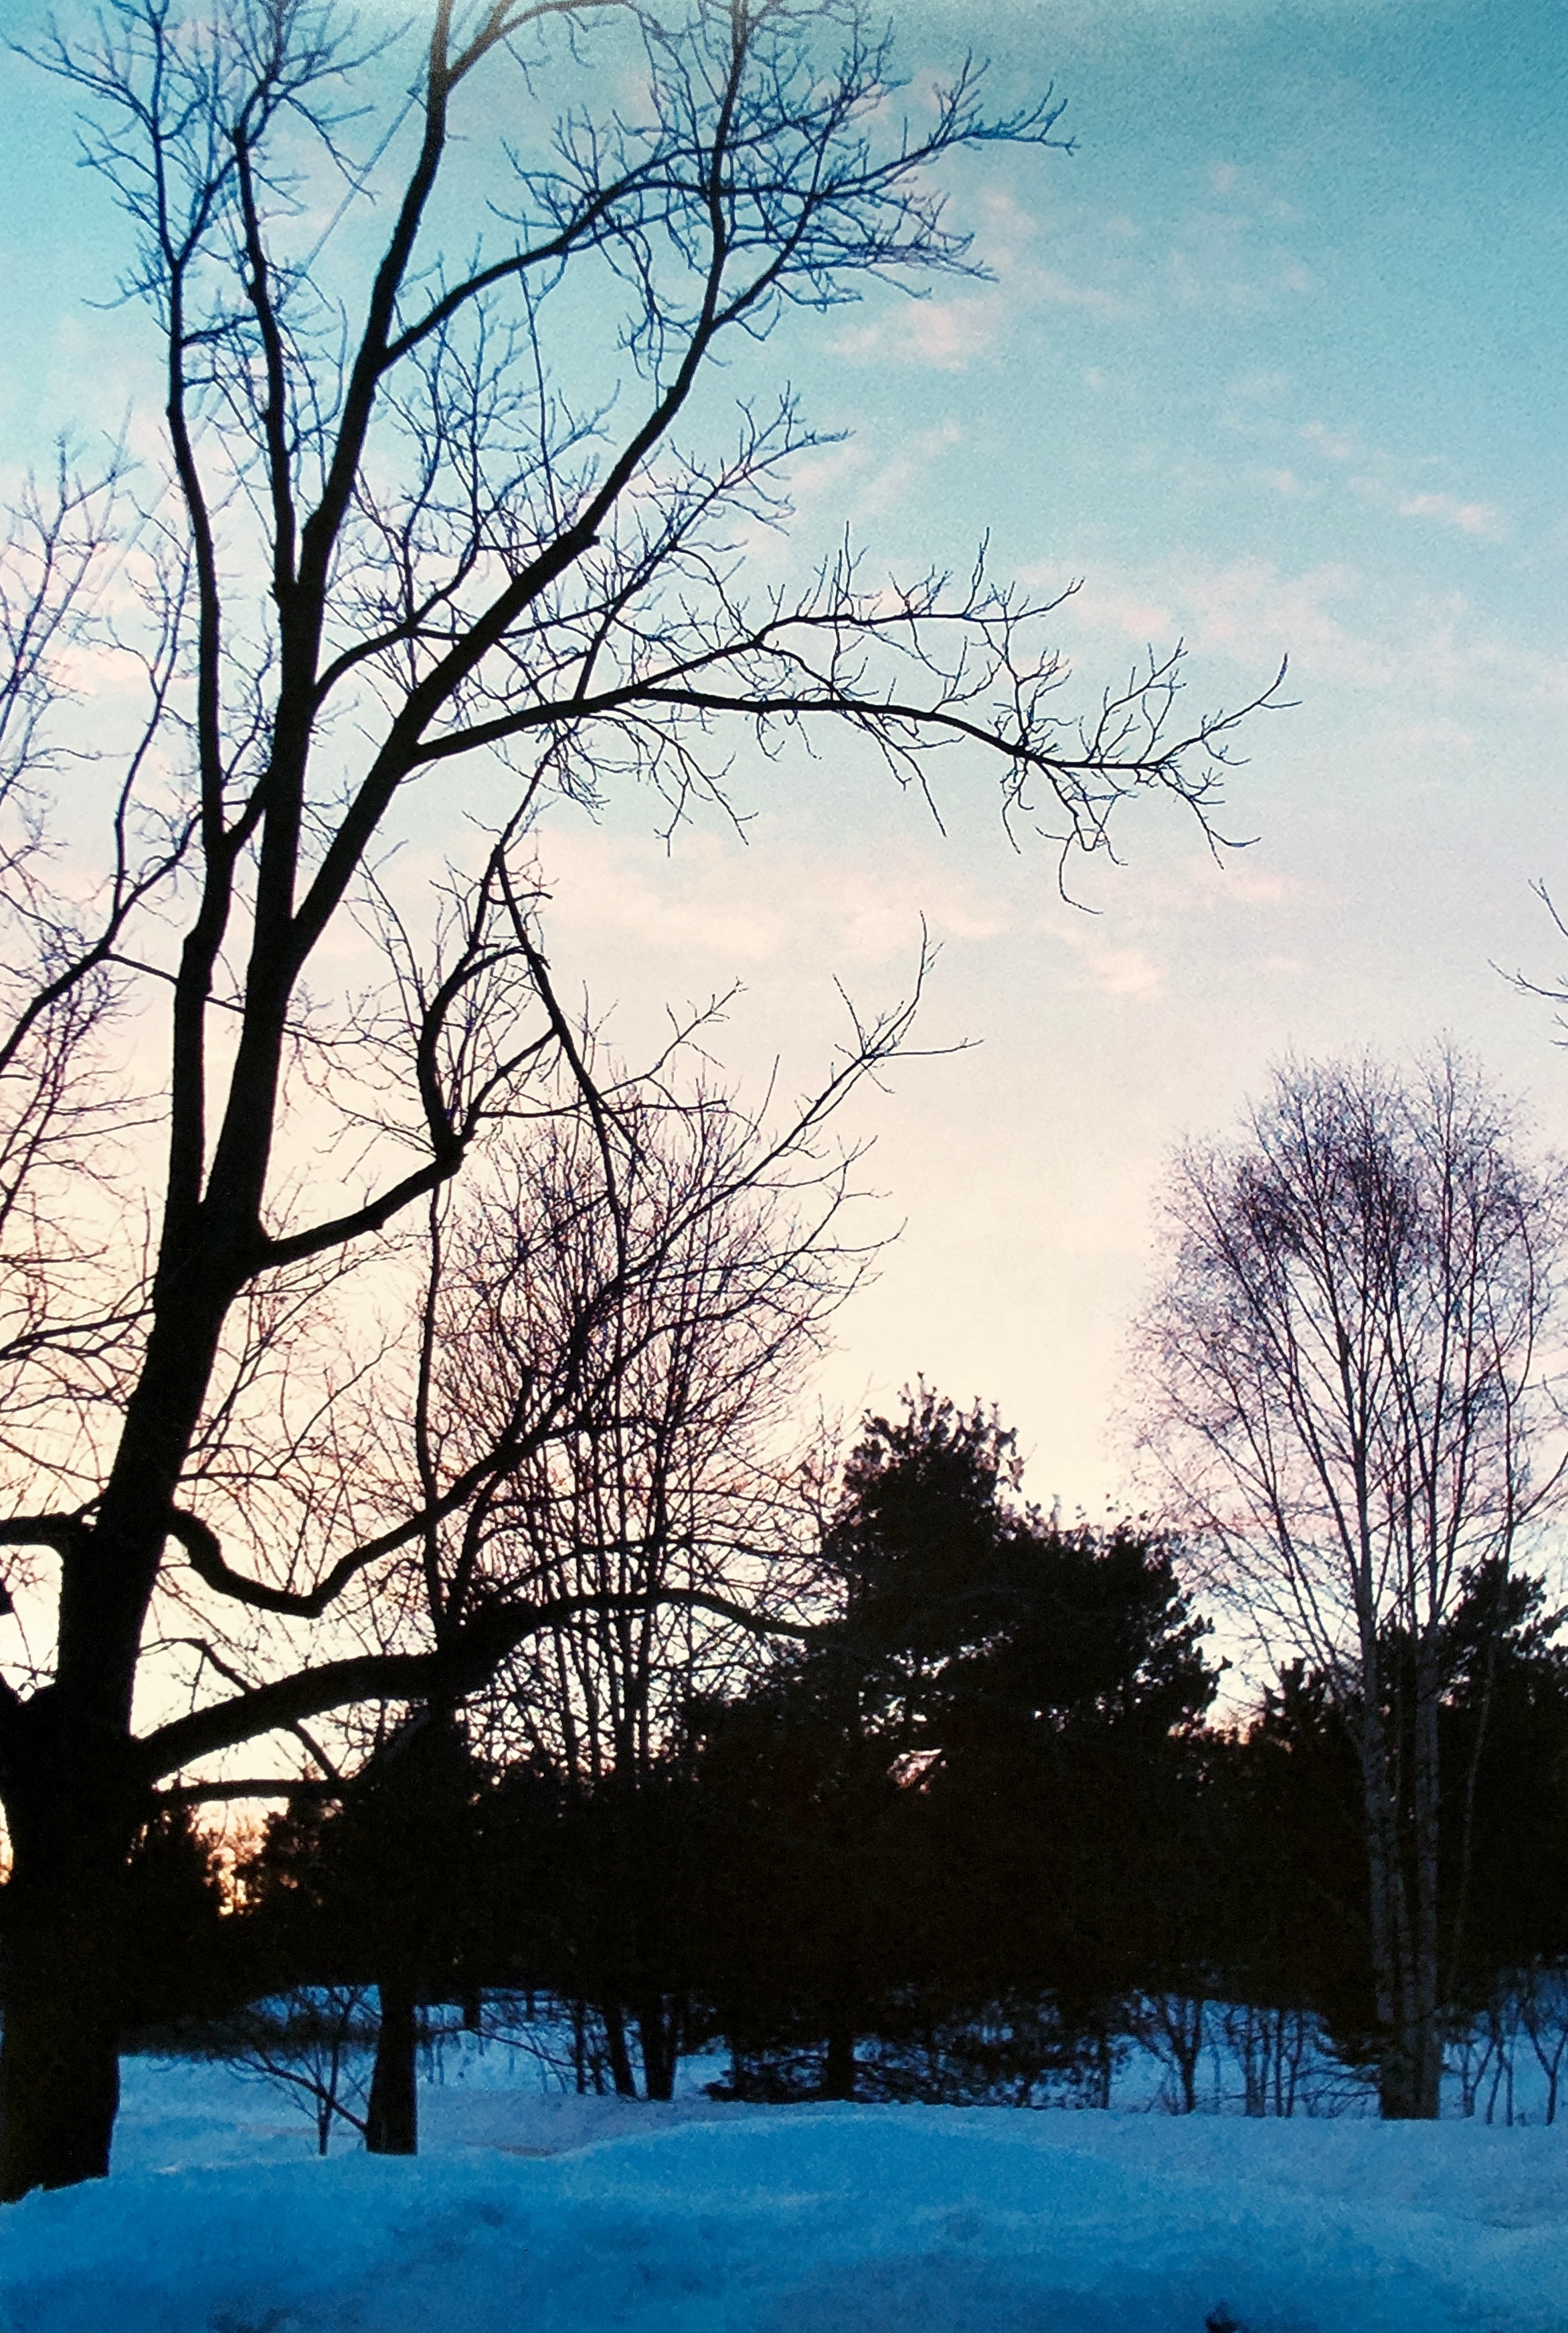 Lacy Trees at Winter Sunset